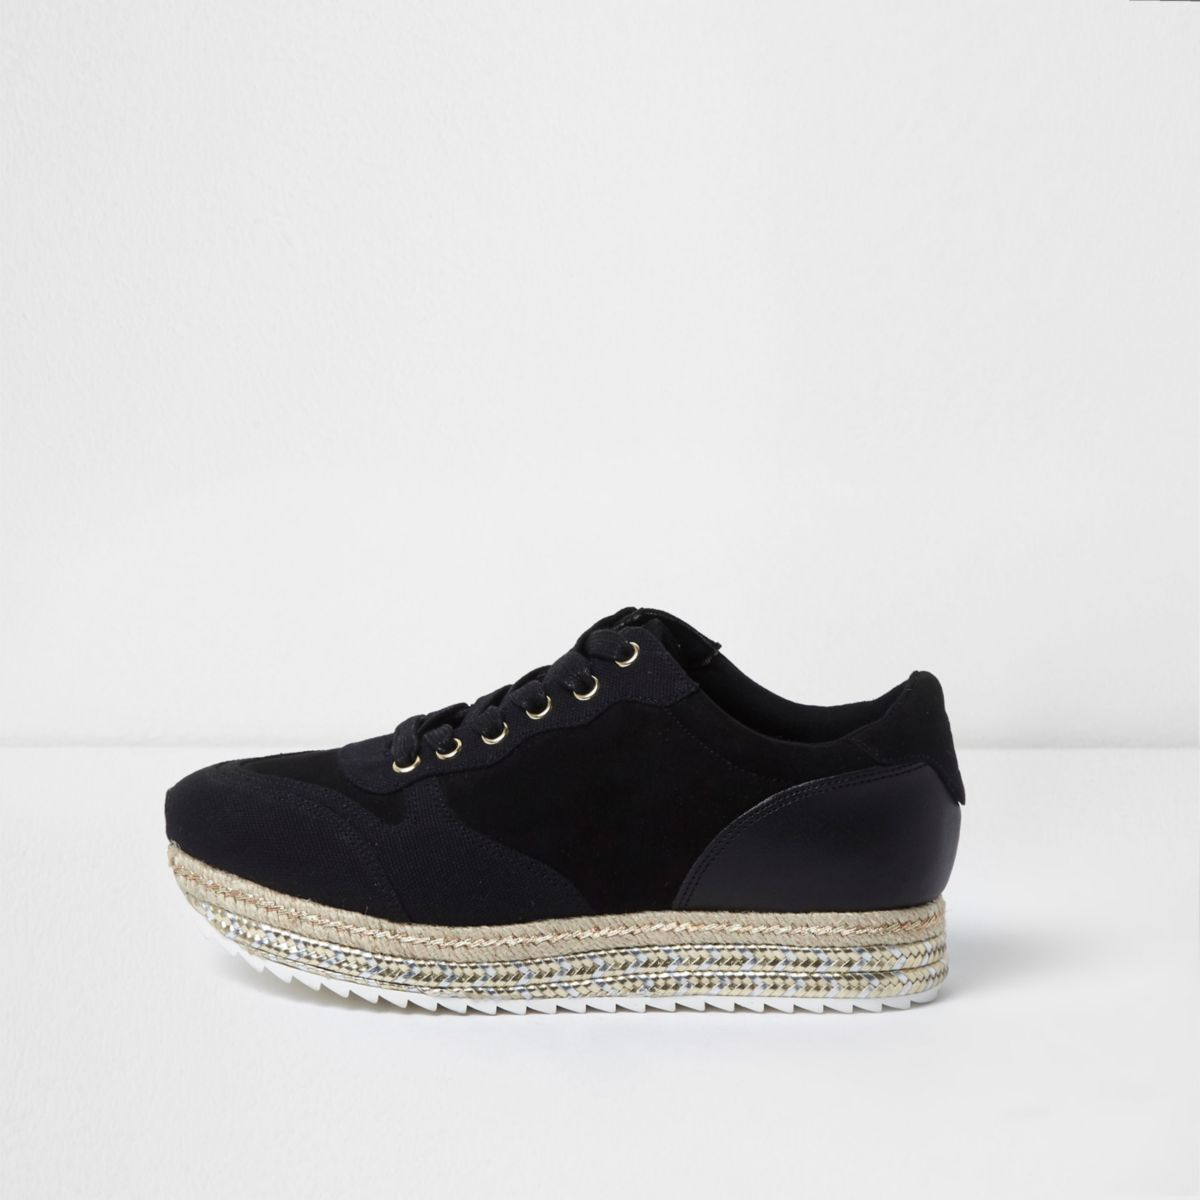 Black stacked espadrille sole runner sneakers